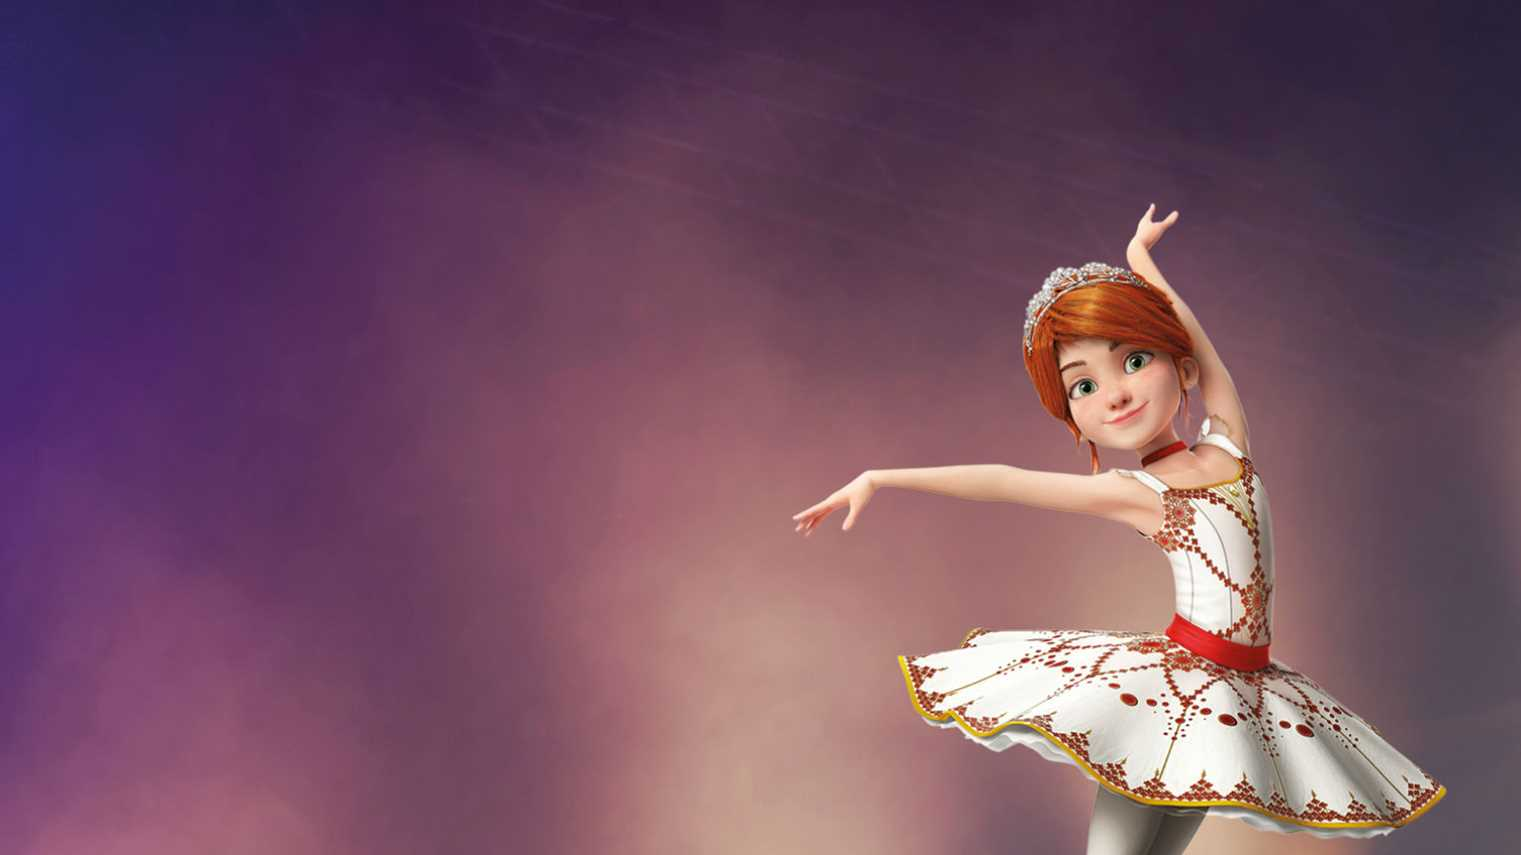 dff80c607037 Five reasons why you should take your tiny dancer to see Ballerina ...